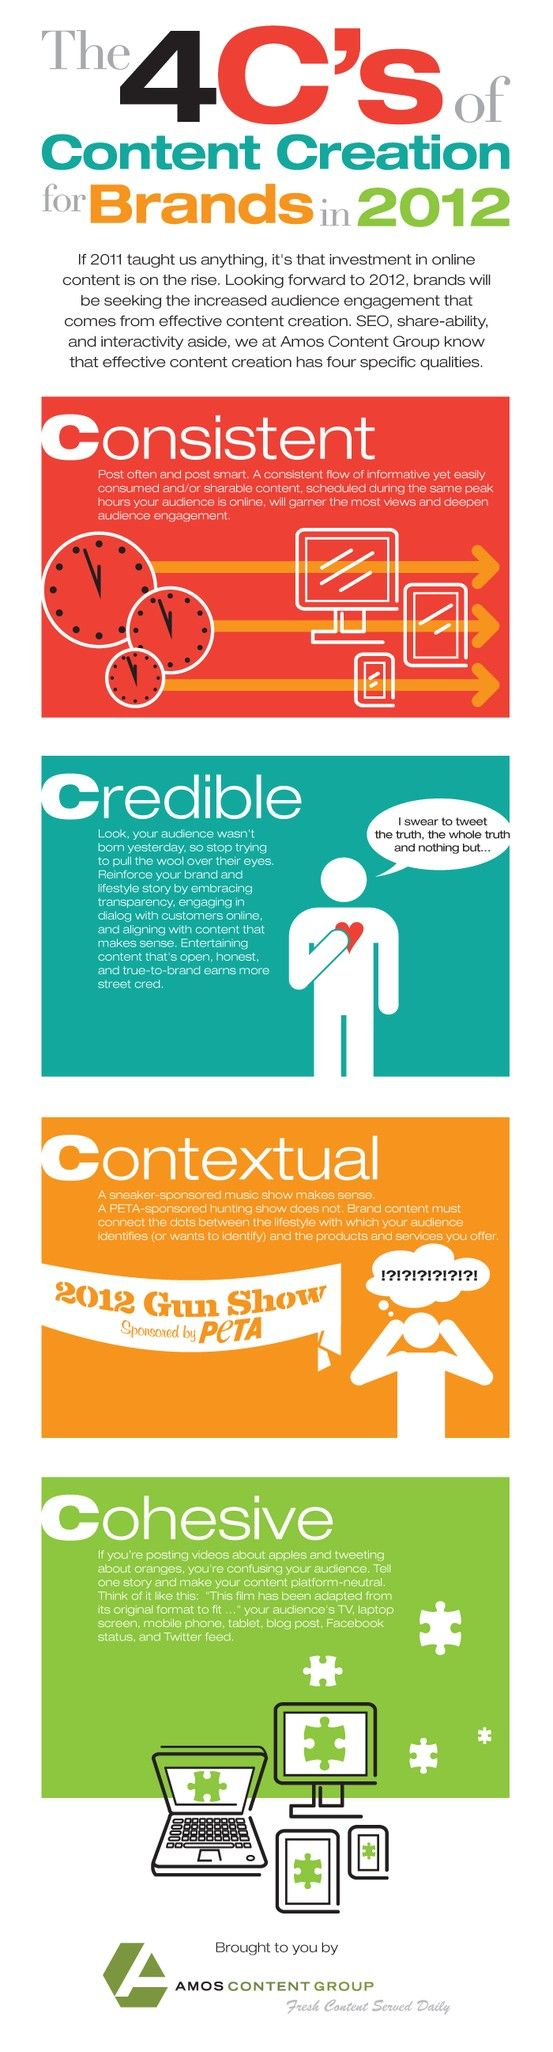 The 4 C's of Content Creation #infographic #smm #socialmedia #in